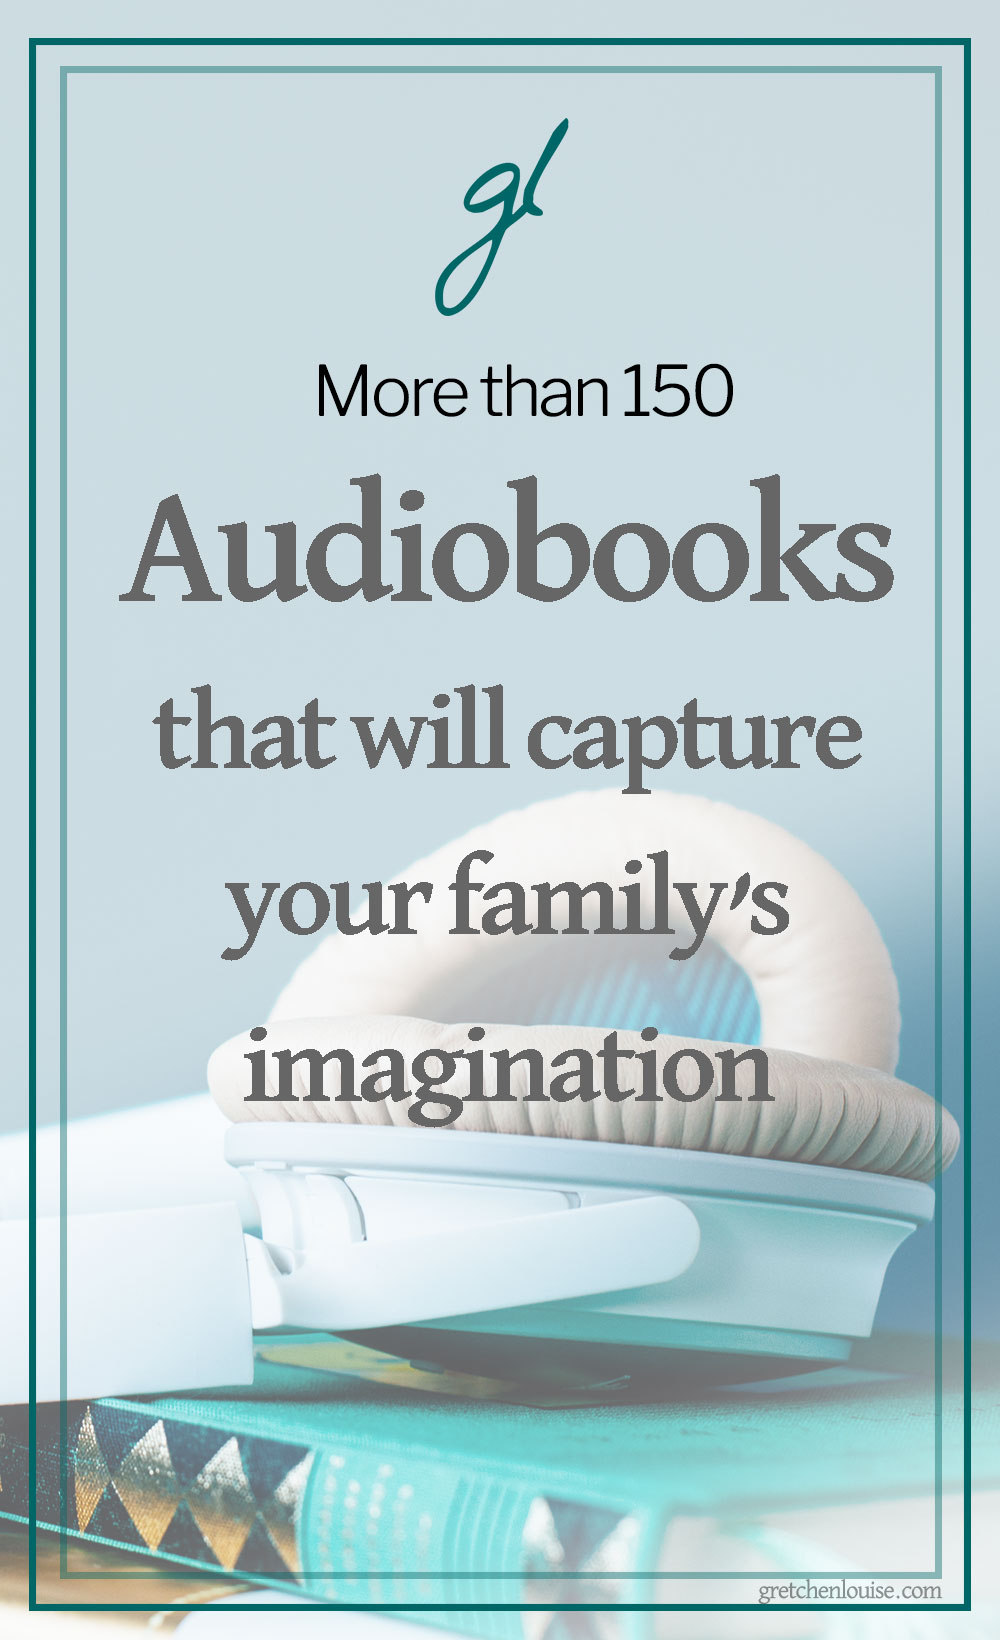 Audiobooks are so much more than just wholesome entertainment.  Audiobooks can inspire the imagination, train vocabulary, instill values, teach character traits, and introduce classic literature. Audiobooks give Mom and Dad's voices a break from reading aloud (and literally save the day when everyone has a cold bug and no voice). And audiobooks can be enjoyed together by the whole family whether folding laundry orgoing on a road trip. via @GretLouise